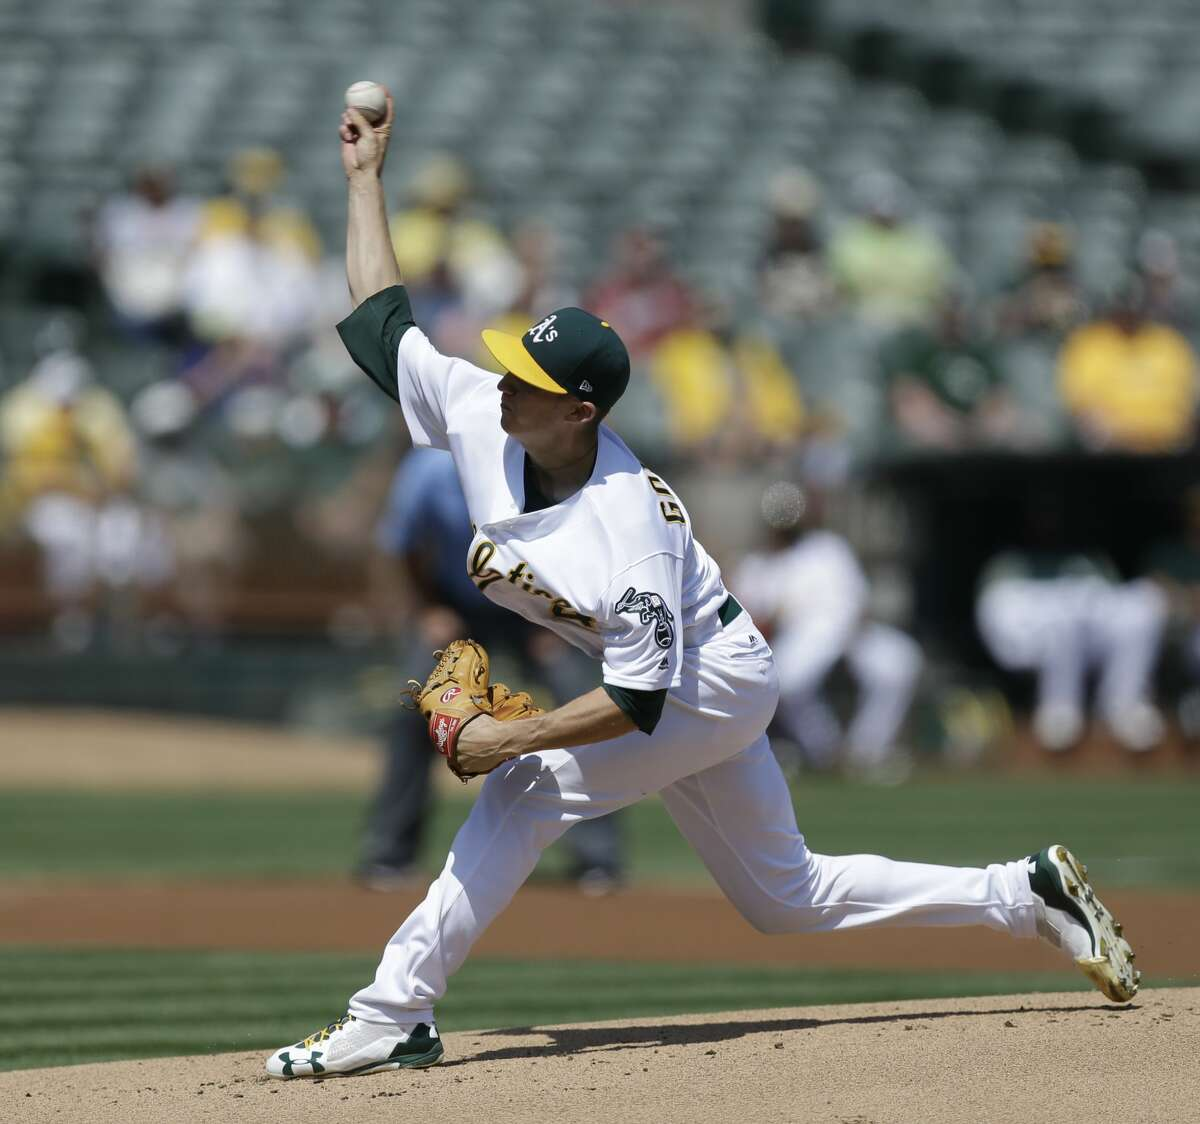 Oakland Athletics pitcher Daniel Gossett works against the Houston Astros in the first inning of the first baseball game of a double header on Saturday, Sept. 9, 2017, in Oakland, Calif. (AP Photo/Ben Margot)